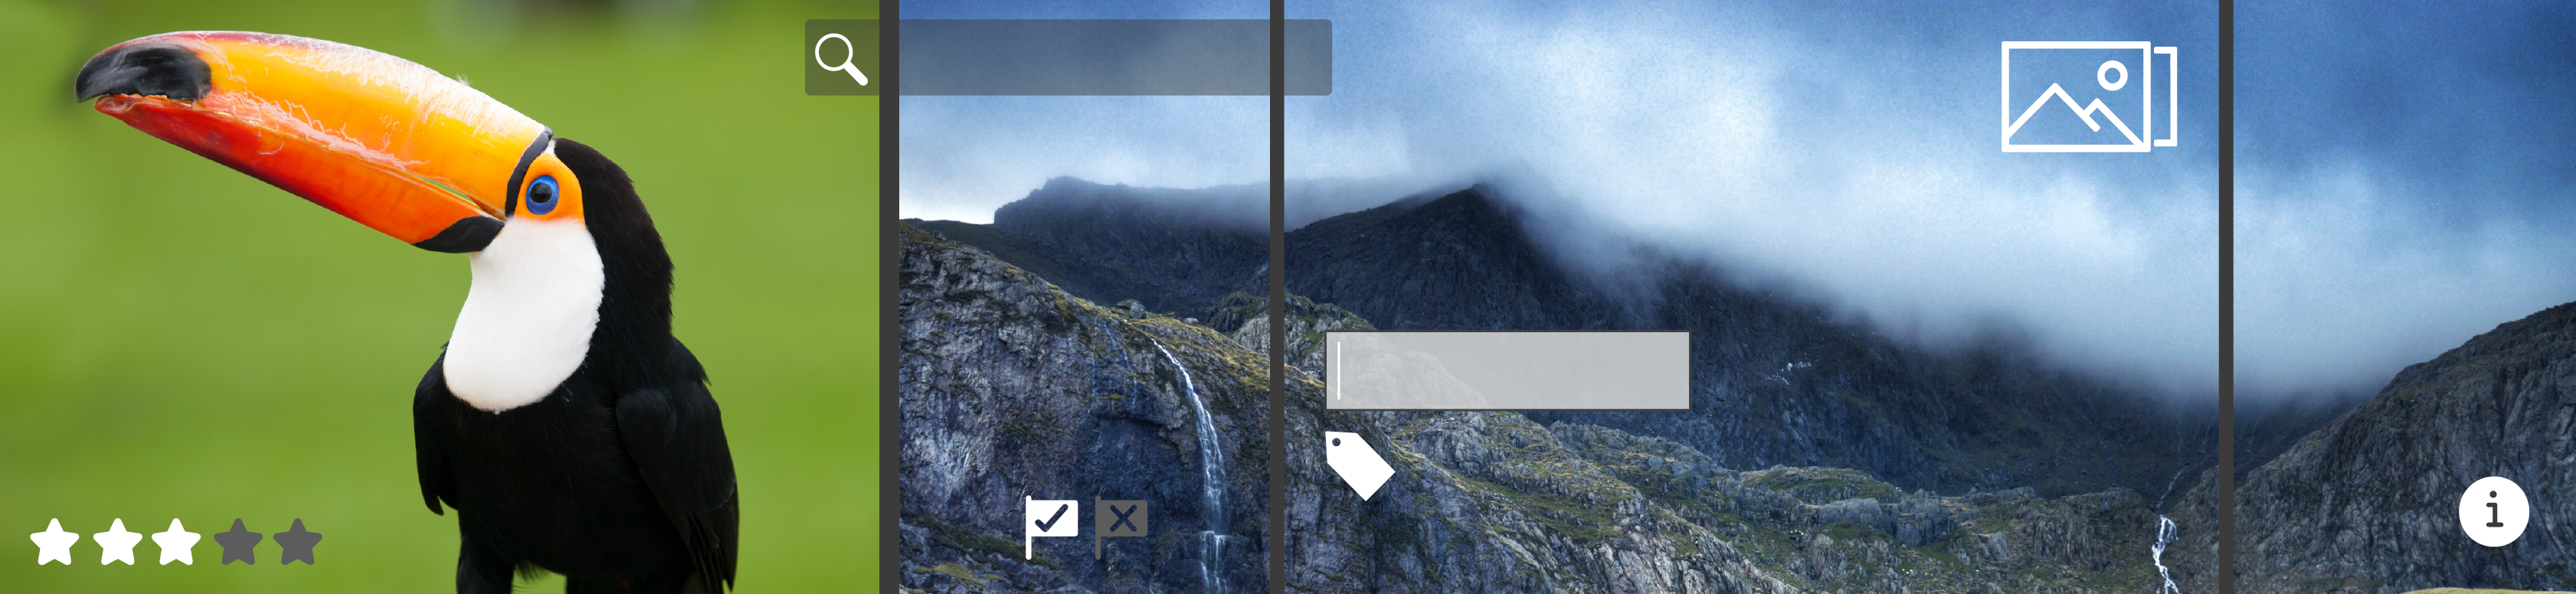 Work with albums. Flag, label, rate, stack, and search photos. Add keywords. View and edit metadata.